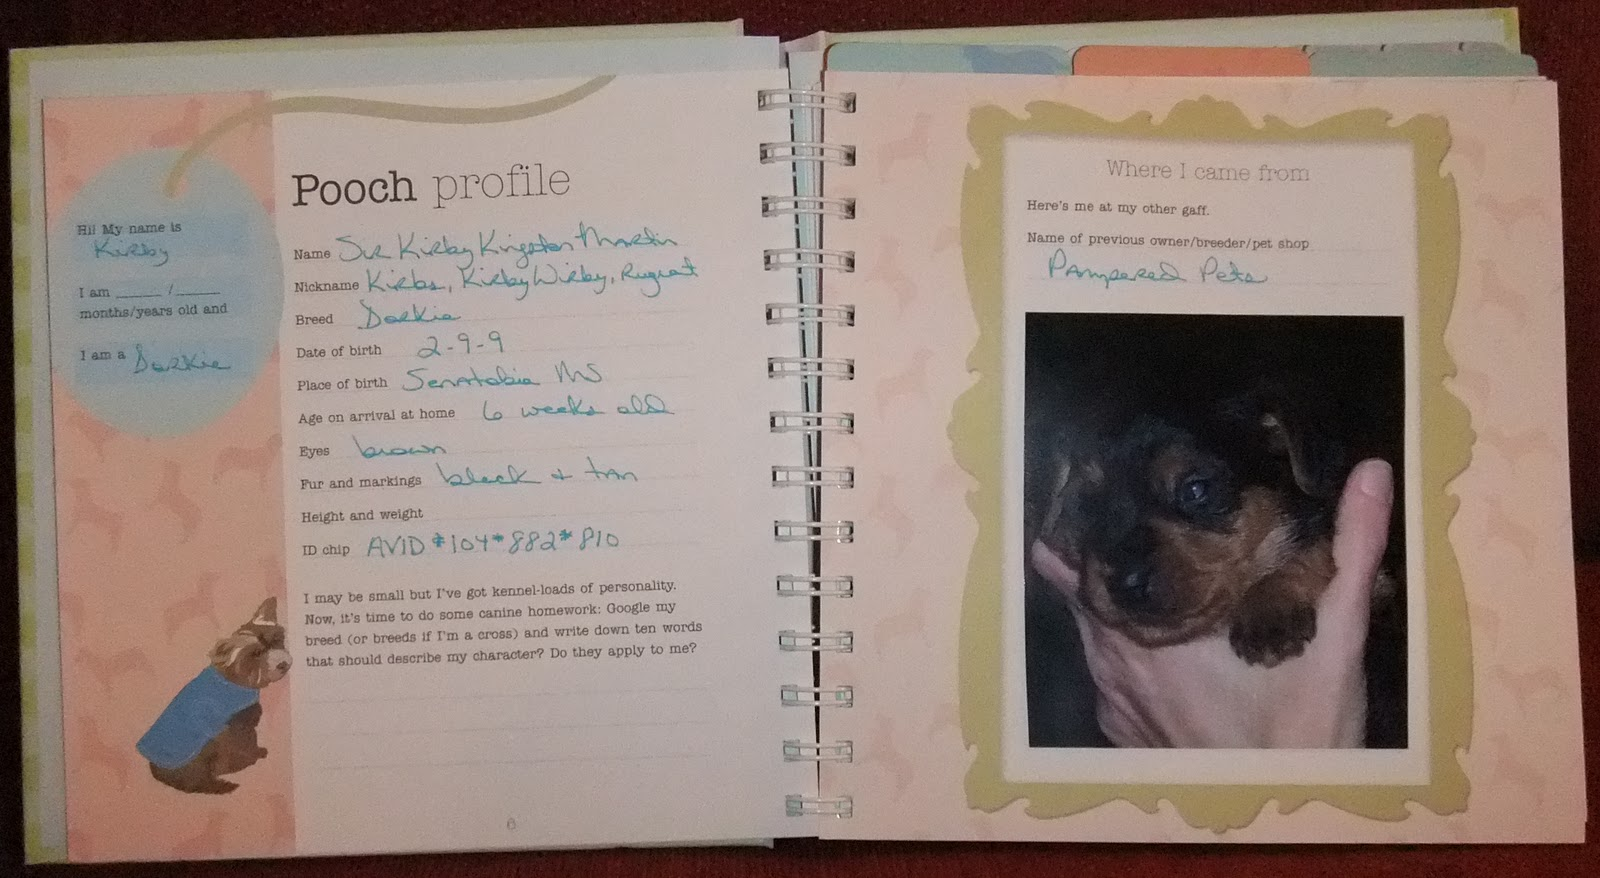 kirby s puppy book the canine chef cookbook